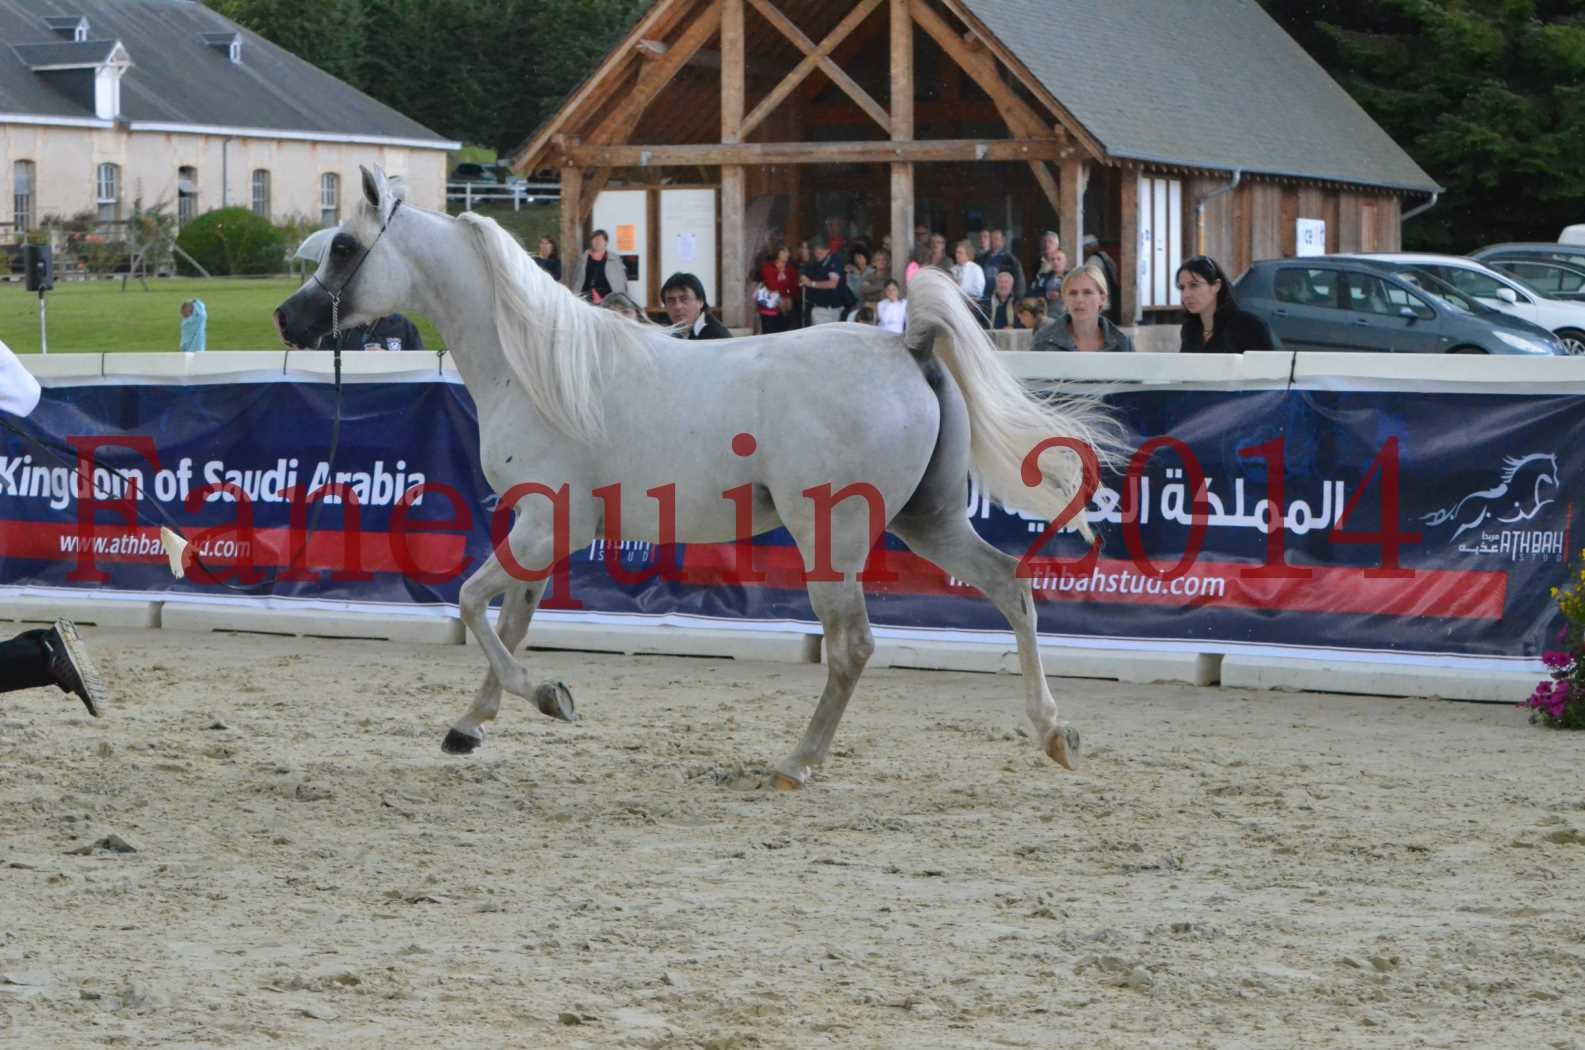 CHAMPIONNAT DE FRANCE 2014 A POMPADOUR - Sélection - FA STARLIGHT - 12